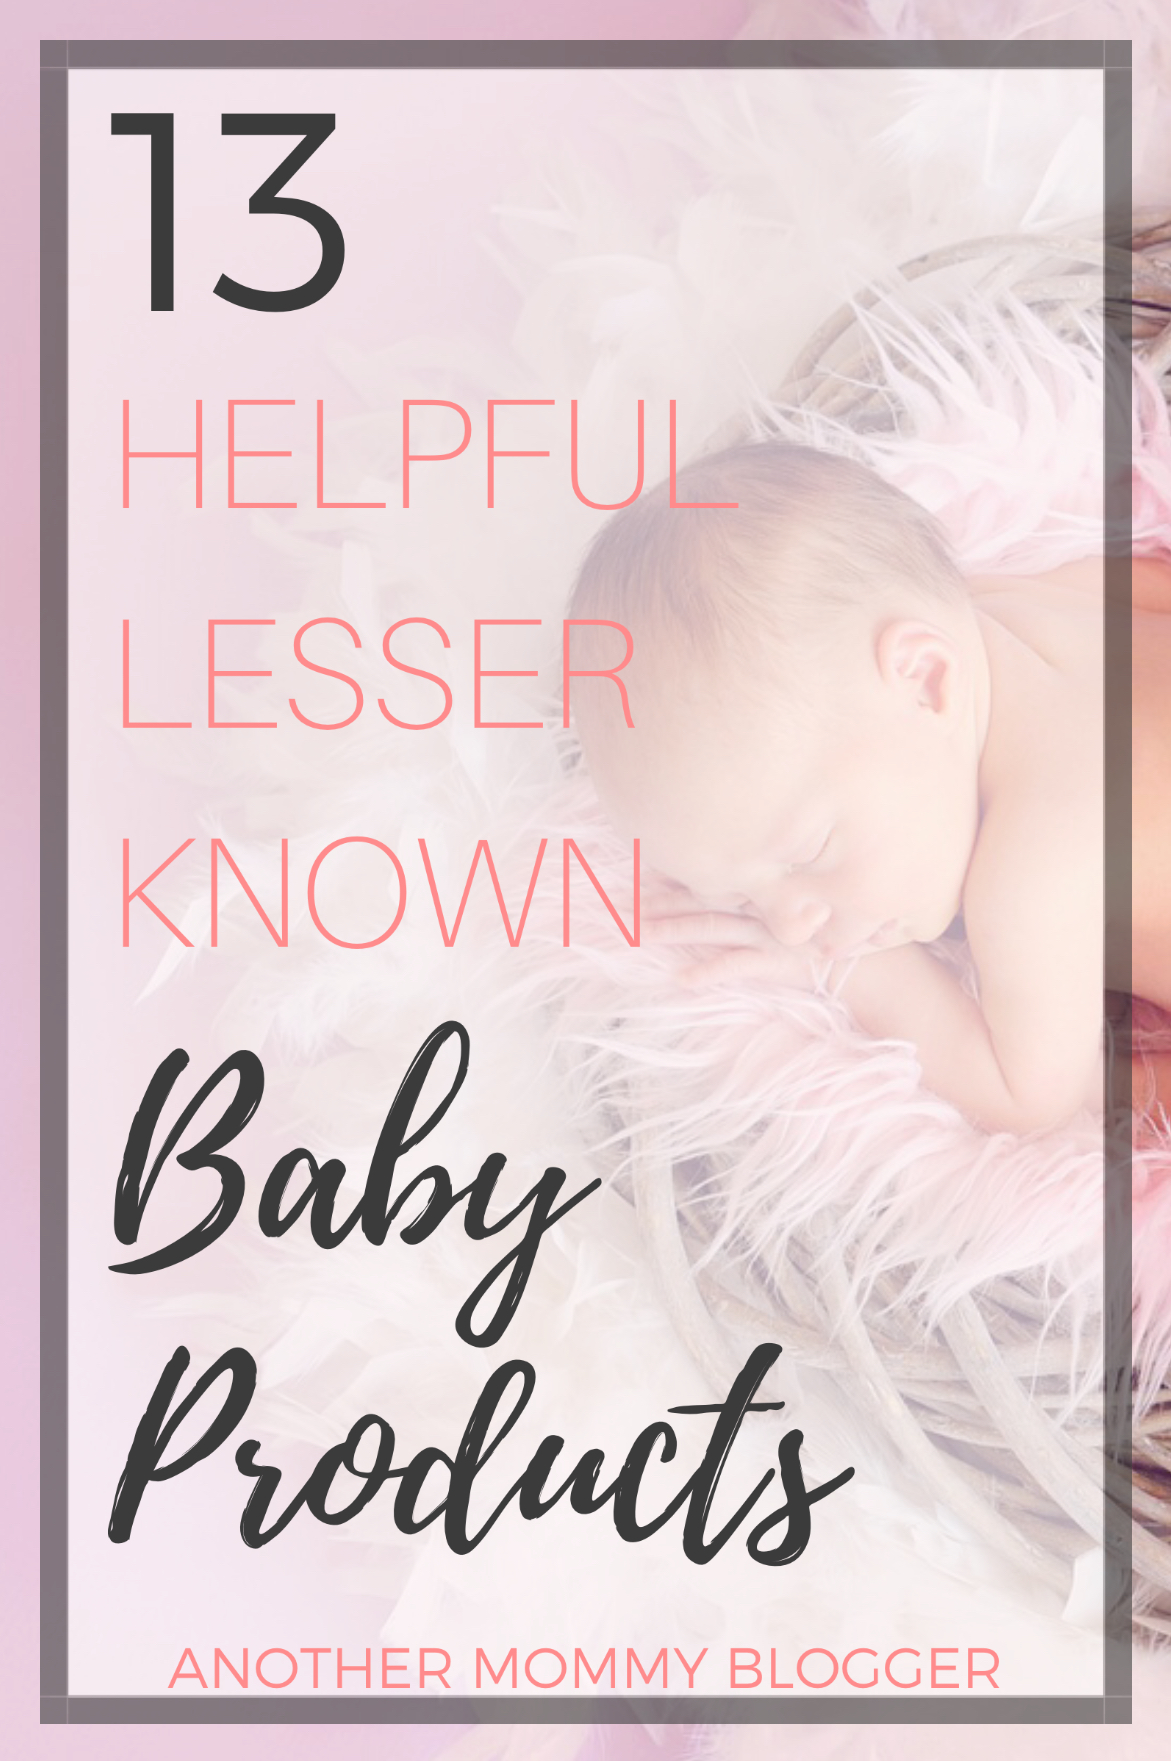 13 Helpful Lesser-known Baby Products